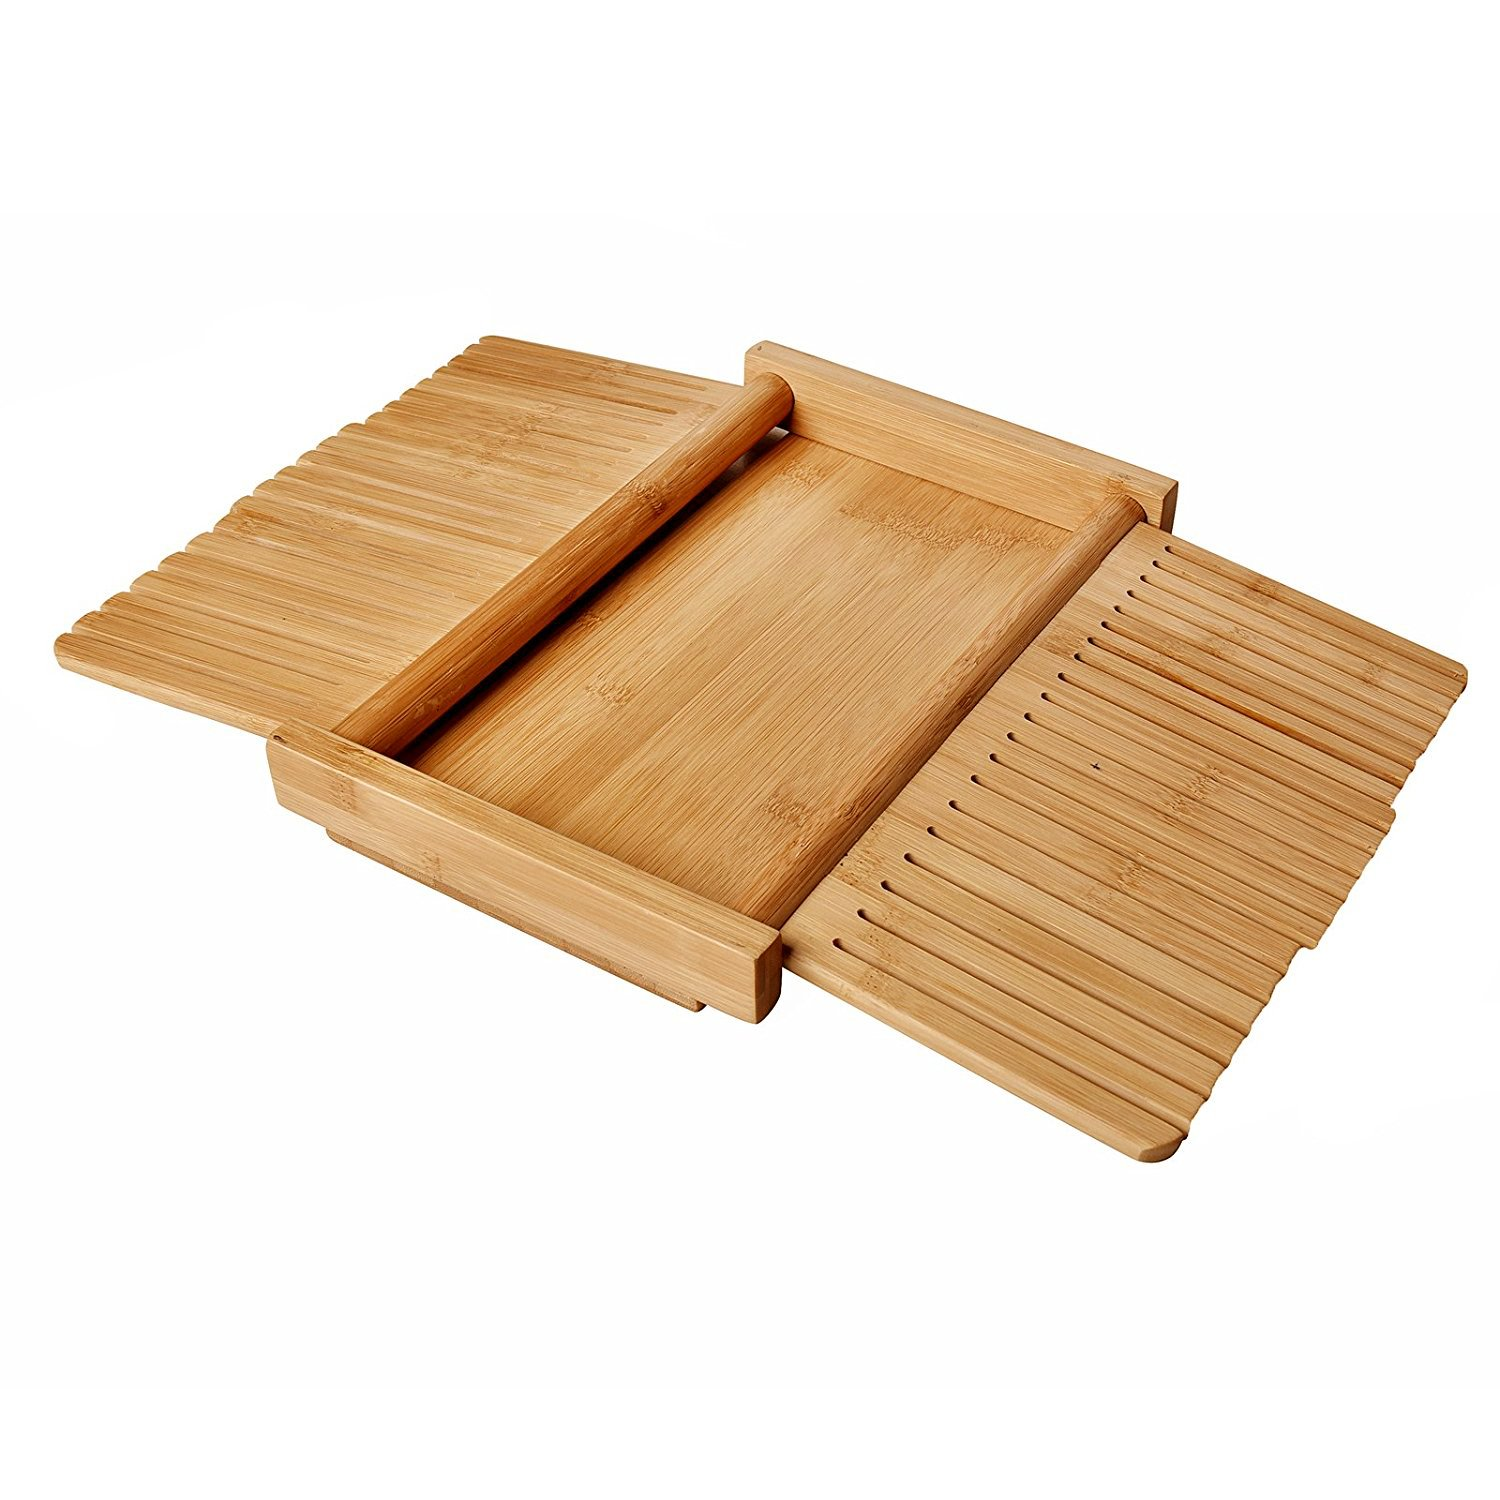 WELLAND Bamboo Bread Slicer Guide, Foldable Wooden Toast Cutting Guide with 3 Slicing Sizes for Homemade Breads, Loaf Cakes by WELLAND (Image #4)